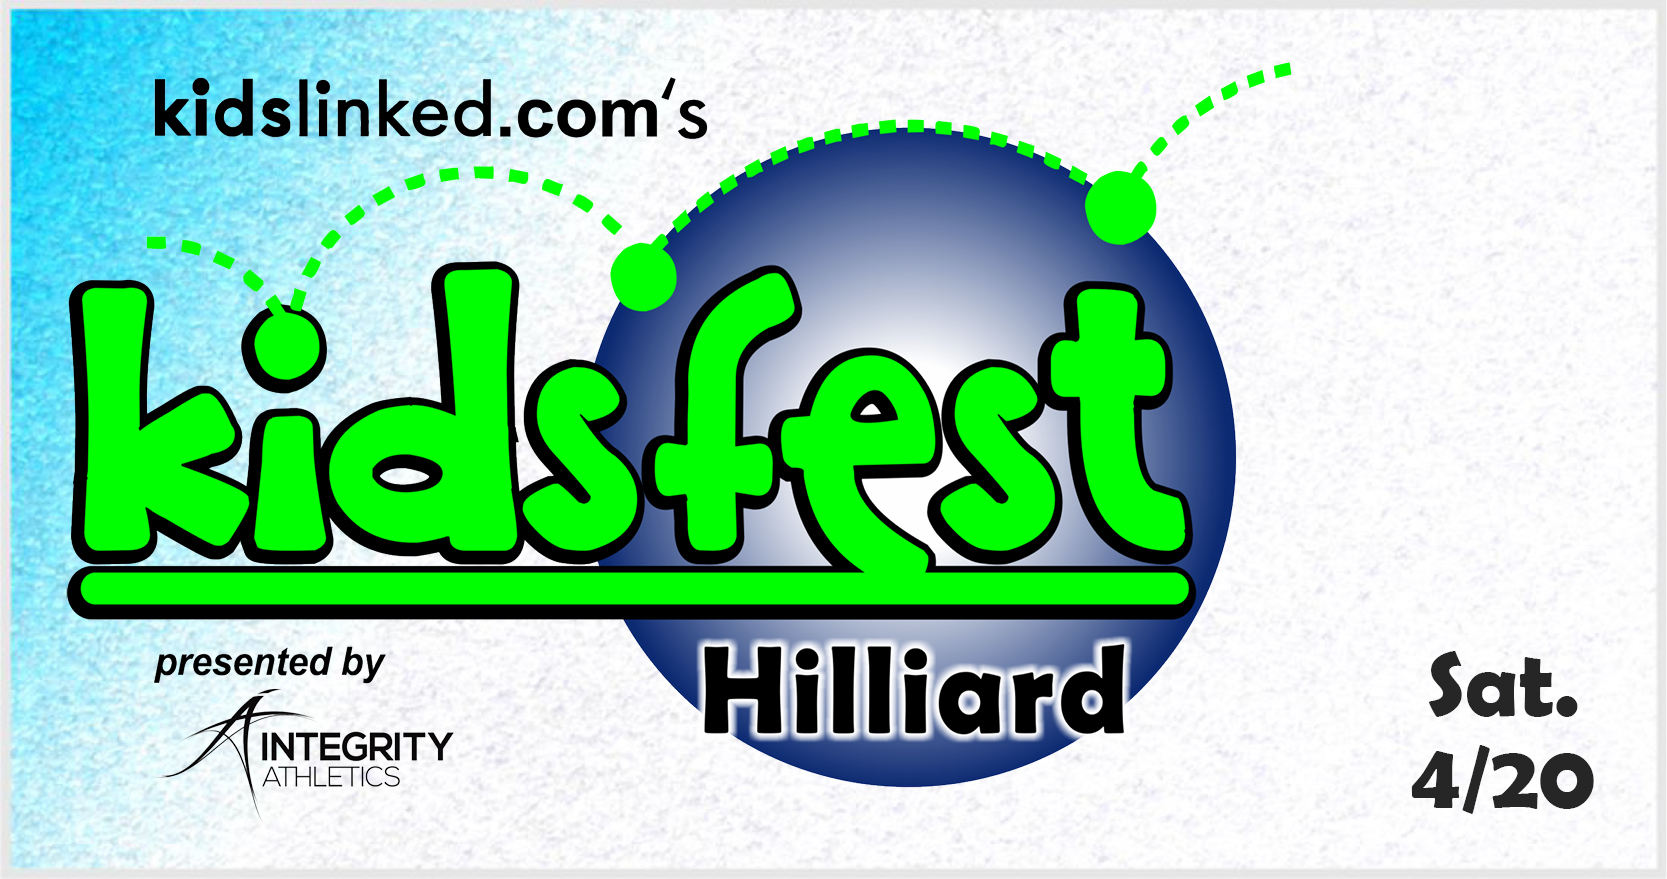 Hilliard KidsFest 2019 presented by Integrity Gymnastics